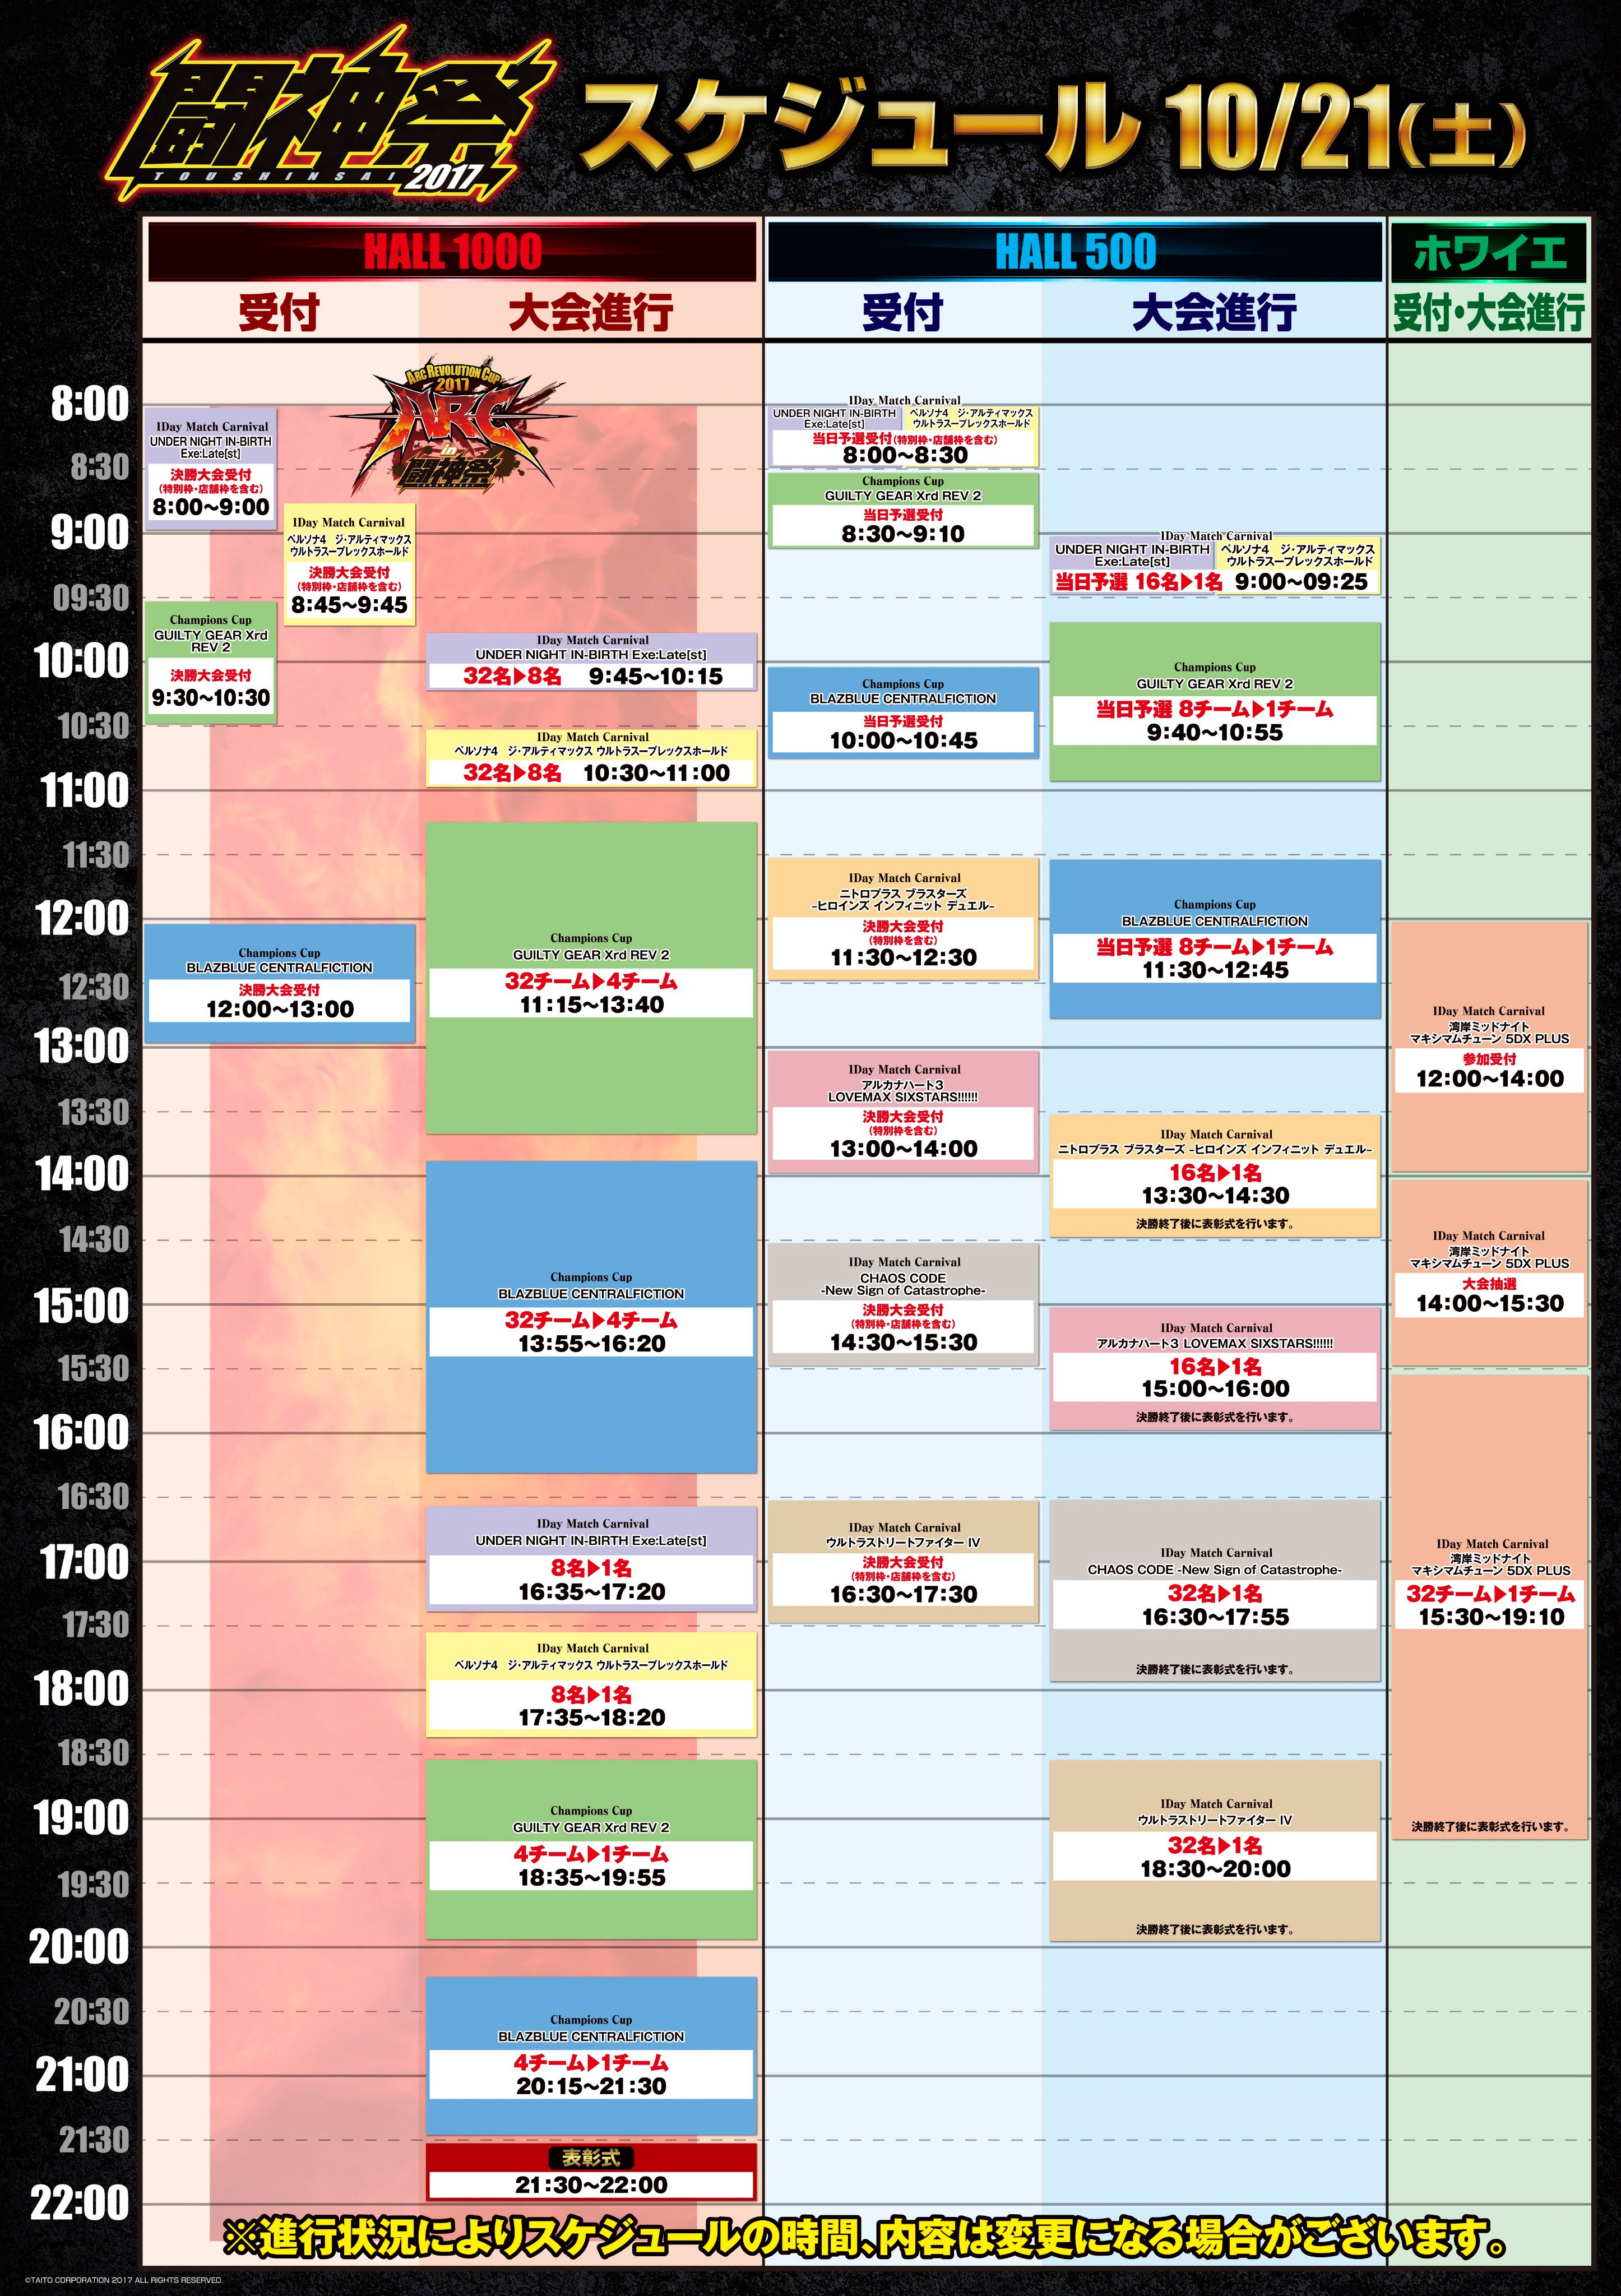 Toushinsai 2017 Event Schedule 1 out of 2 image gallery